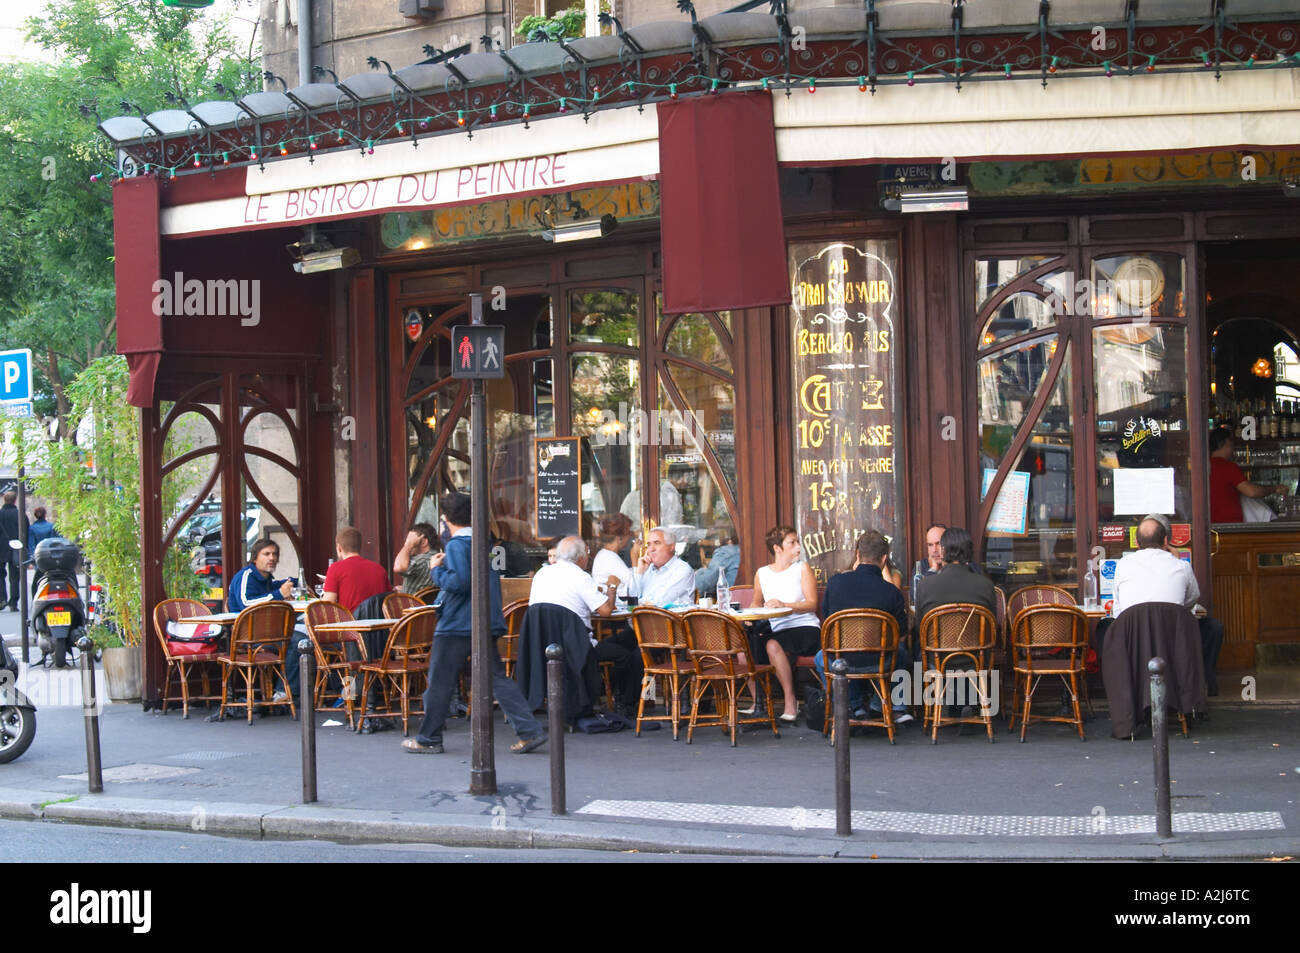 Bar Terrasse Paris Le Bistrot Du Peintre Cafe Bar Terrasse Terasse Outside